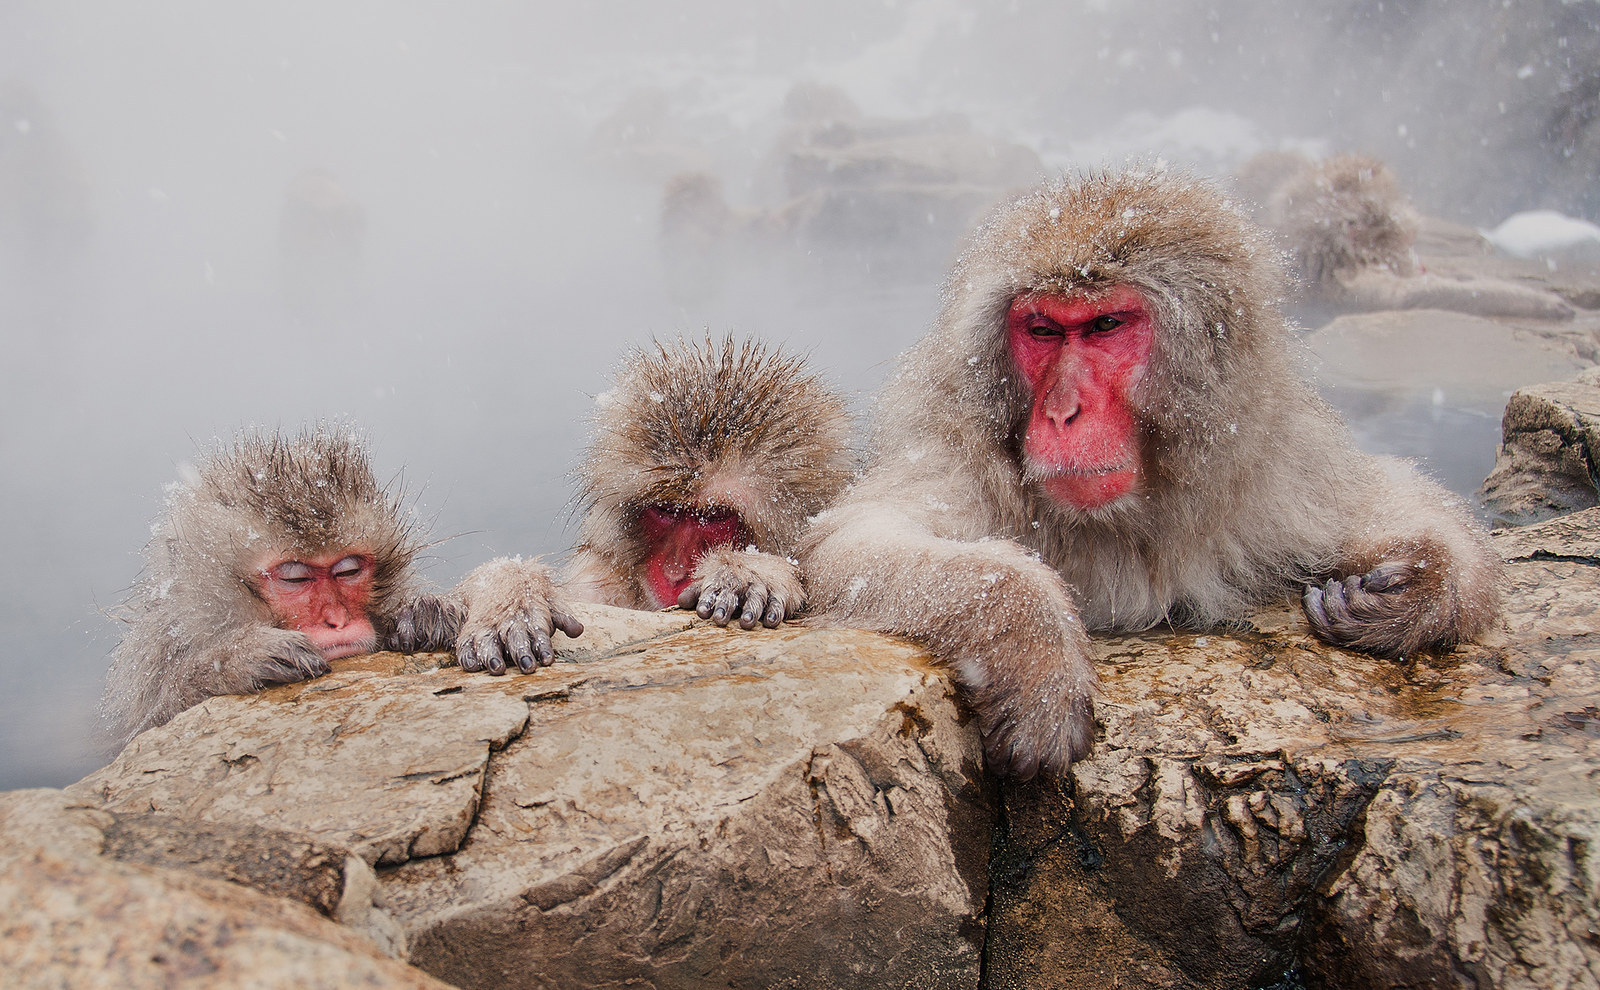 """A Monkey Onsen"", by Christopher Yeoh, from Australia"